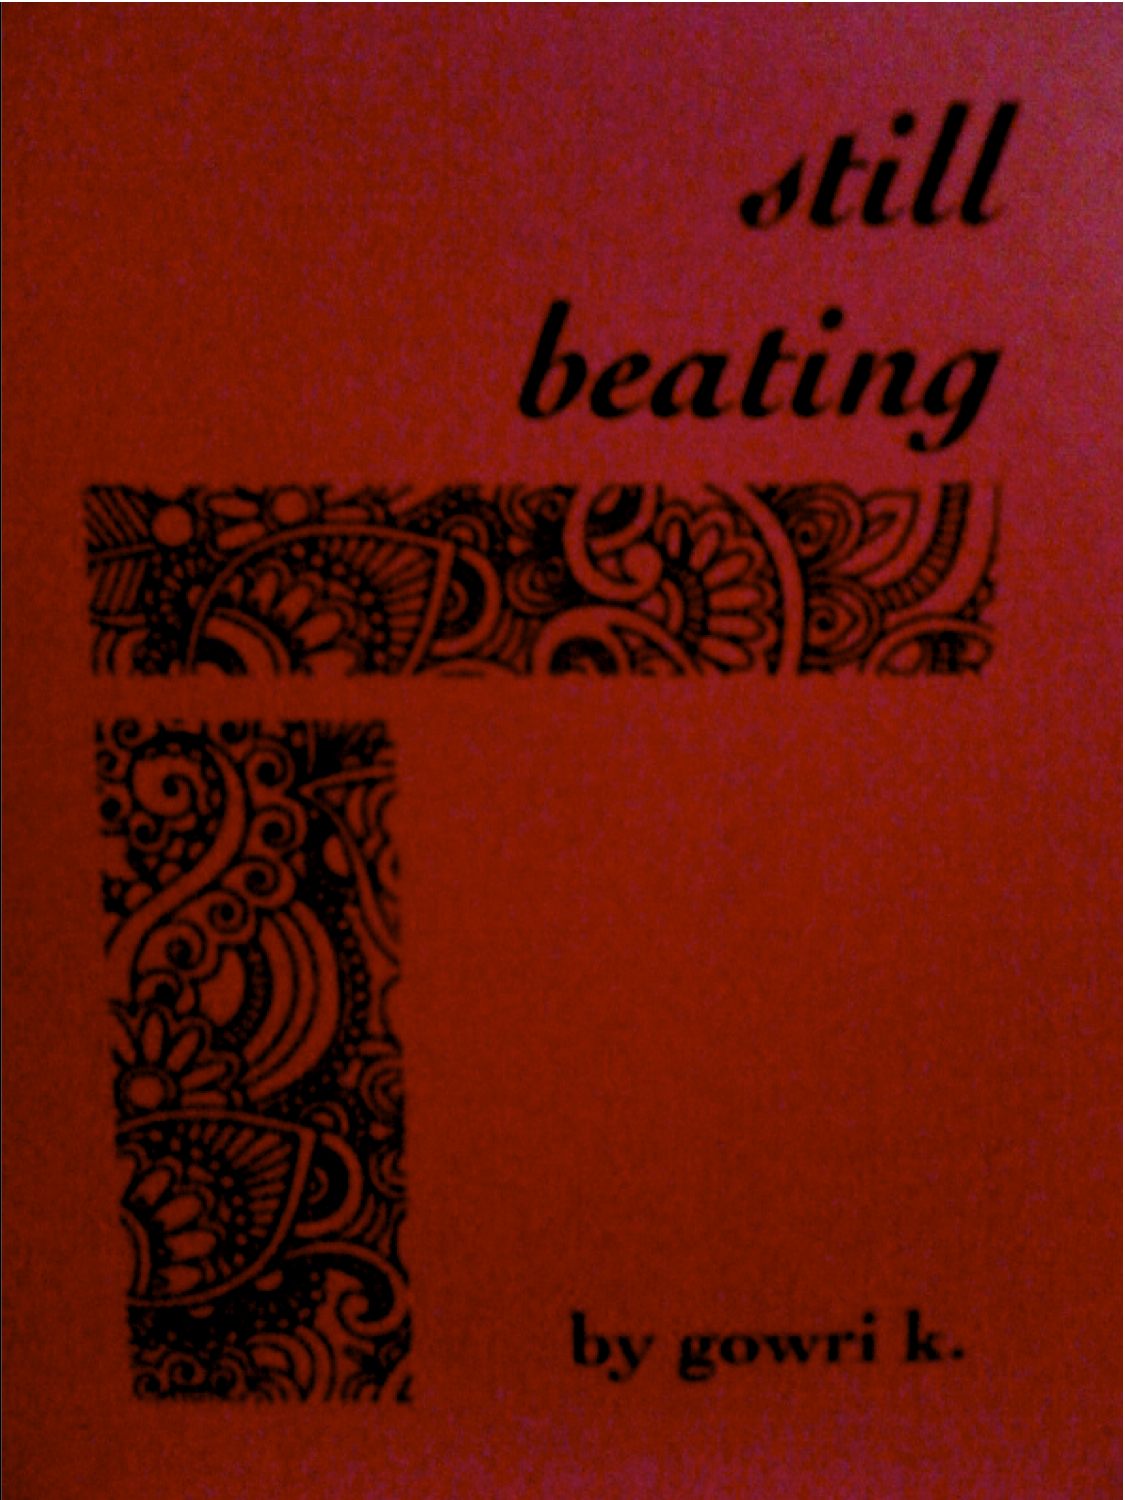 Purchase my chapbook here